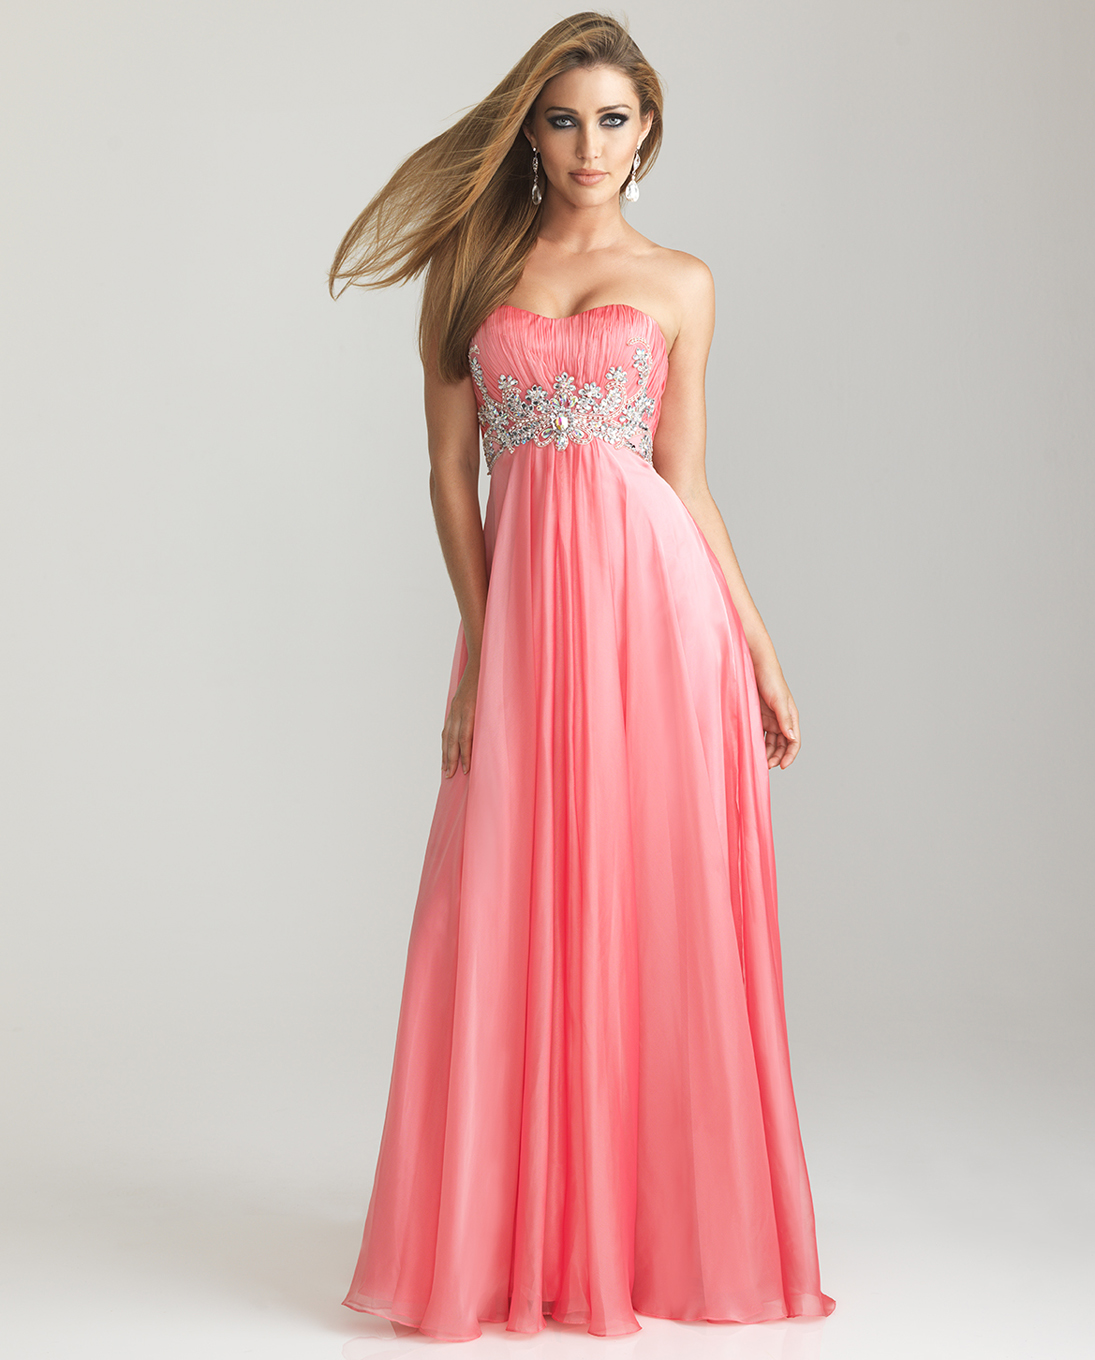 Blog of Wedding and Occasion Wear: Prom Dresses for Short Girls